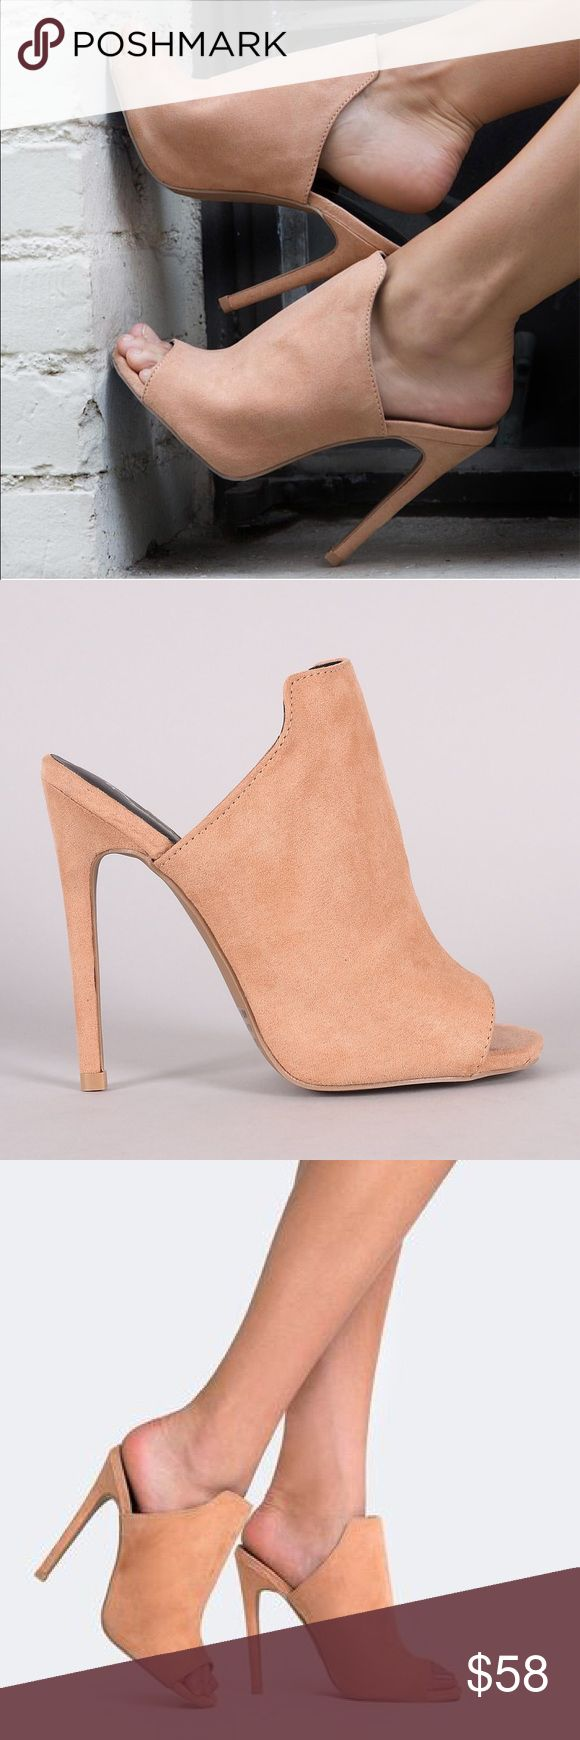 "Blush Stiletto Peep Toe Mule Heel LOOK CHIC AS EVER IN THESE MINIMAL SLIDE HEELS. THE SMOOTH SUEDE UPPER CREATES A SEAMLESS LOOK THAT BLENDS EFFORTLESSLY WITH BODYCON OUTFITS. TIE YOUR SILHOUETTE TOGETHER WITH A PEEP TOE AND KILLER THIN HEEL. BLUSH COLOR MATERIAL: SUEDE LEATHERETTE MEASUREMENT: HEEL HEIGHT: 4 1/2"" (APPROX) FITTING: TRUE TO SIZE Boutique Shoes Mules & Clogs"